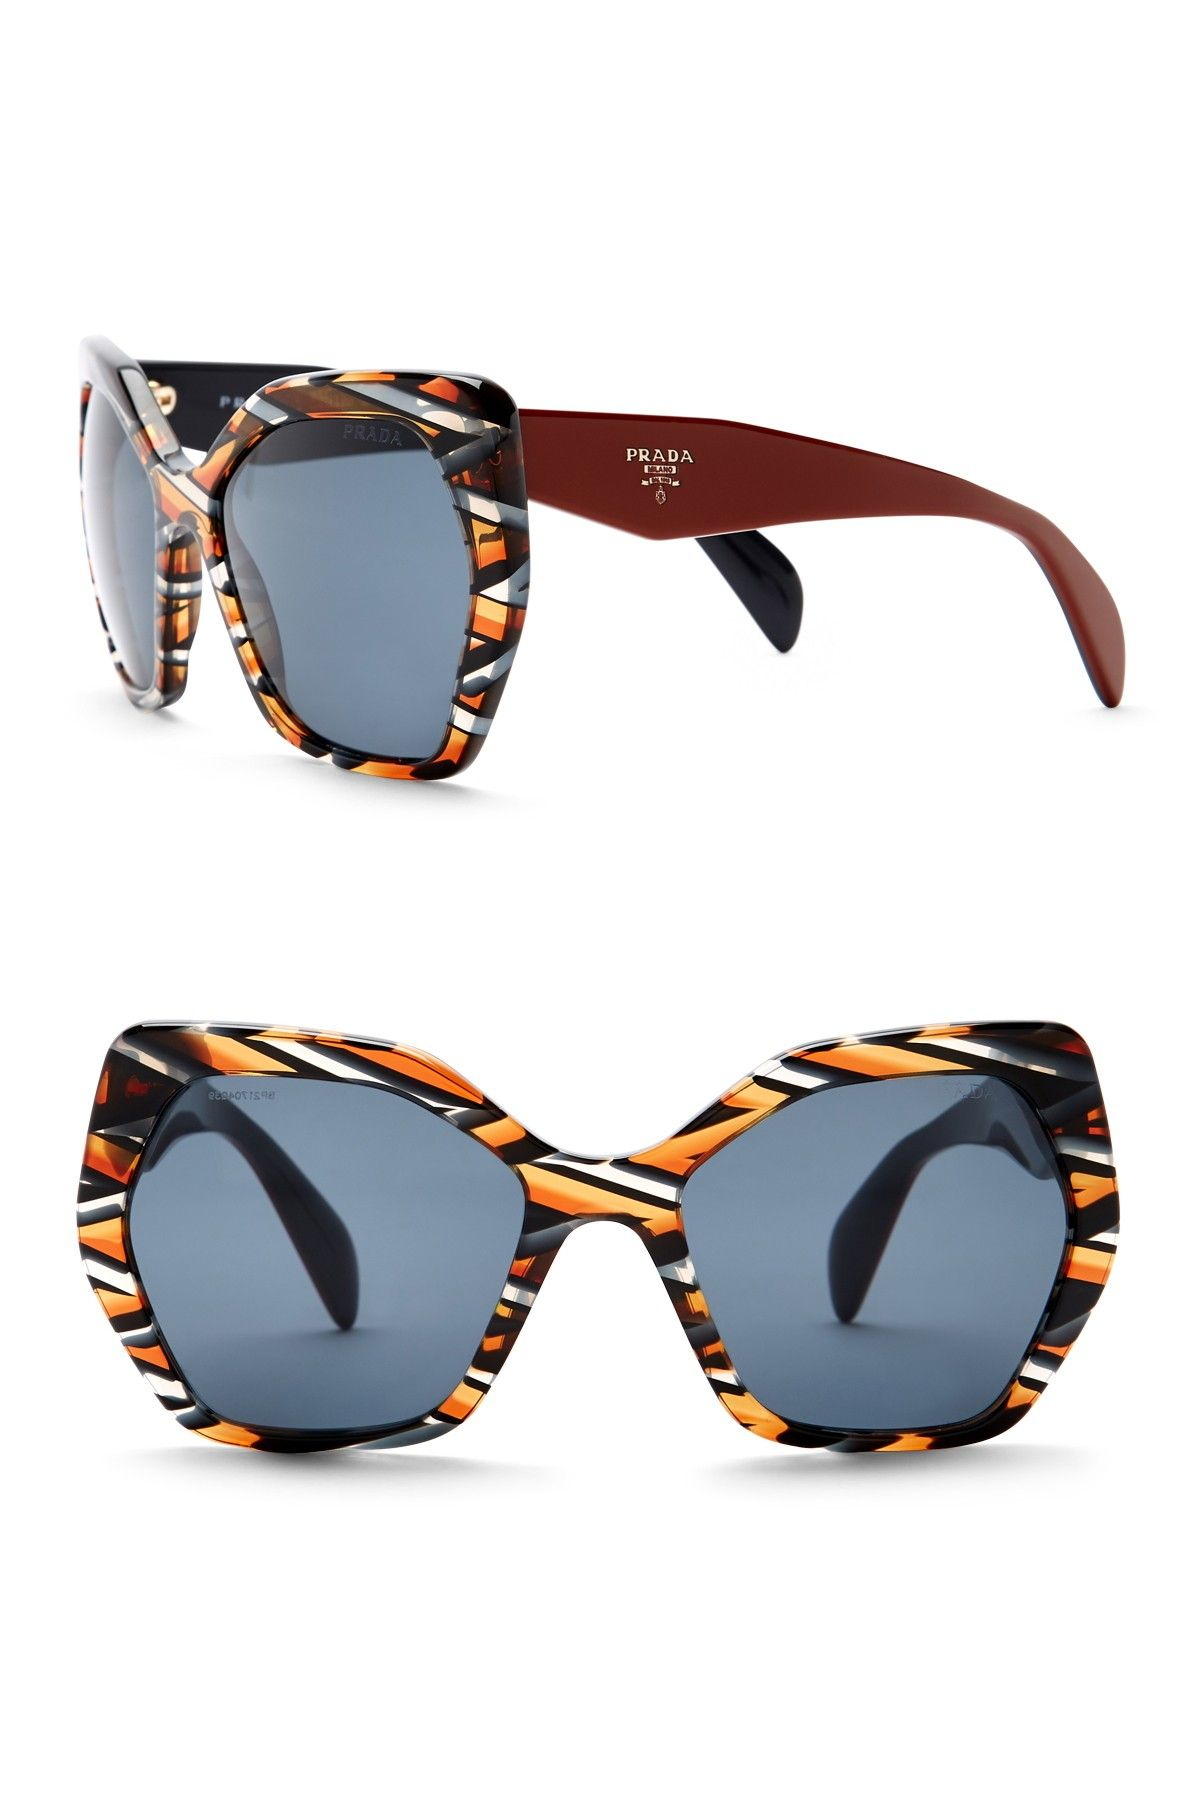 bc021519318 Prada - Women s Irregular Heritage Triangle 56mm Sunglasses is now 64% off.  Free Shipping on orders over  100.